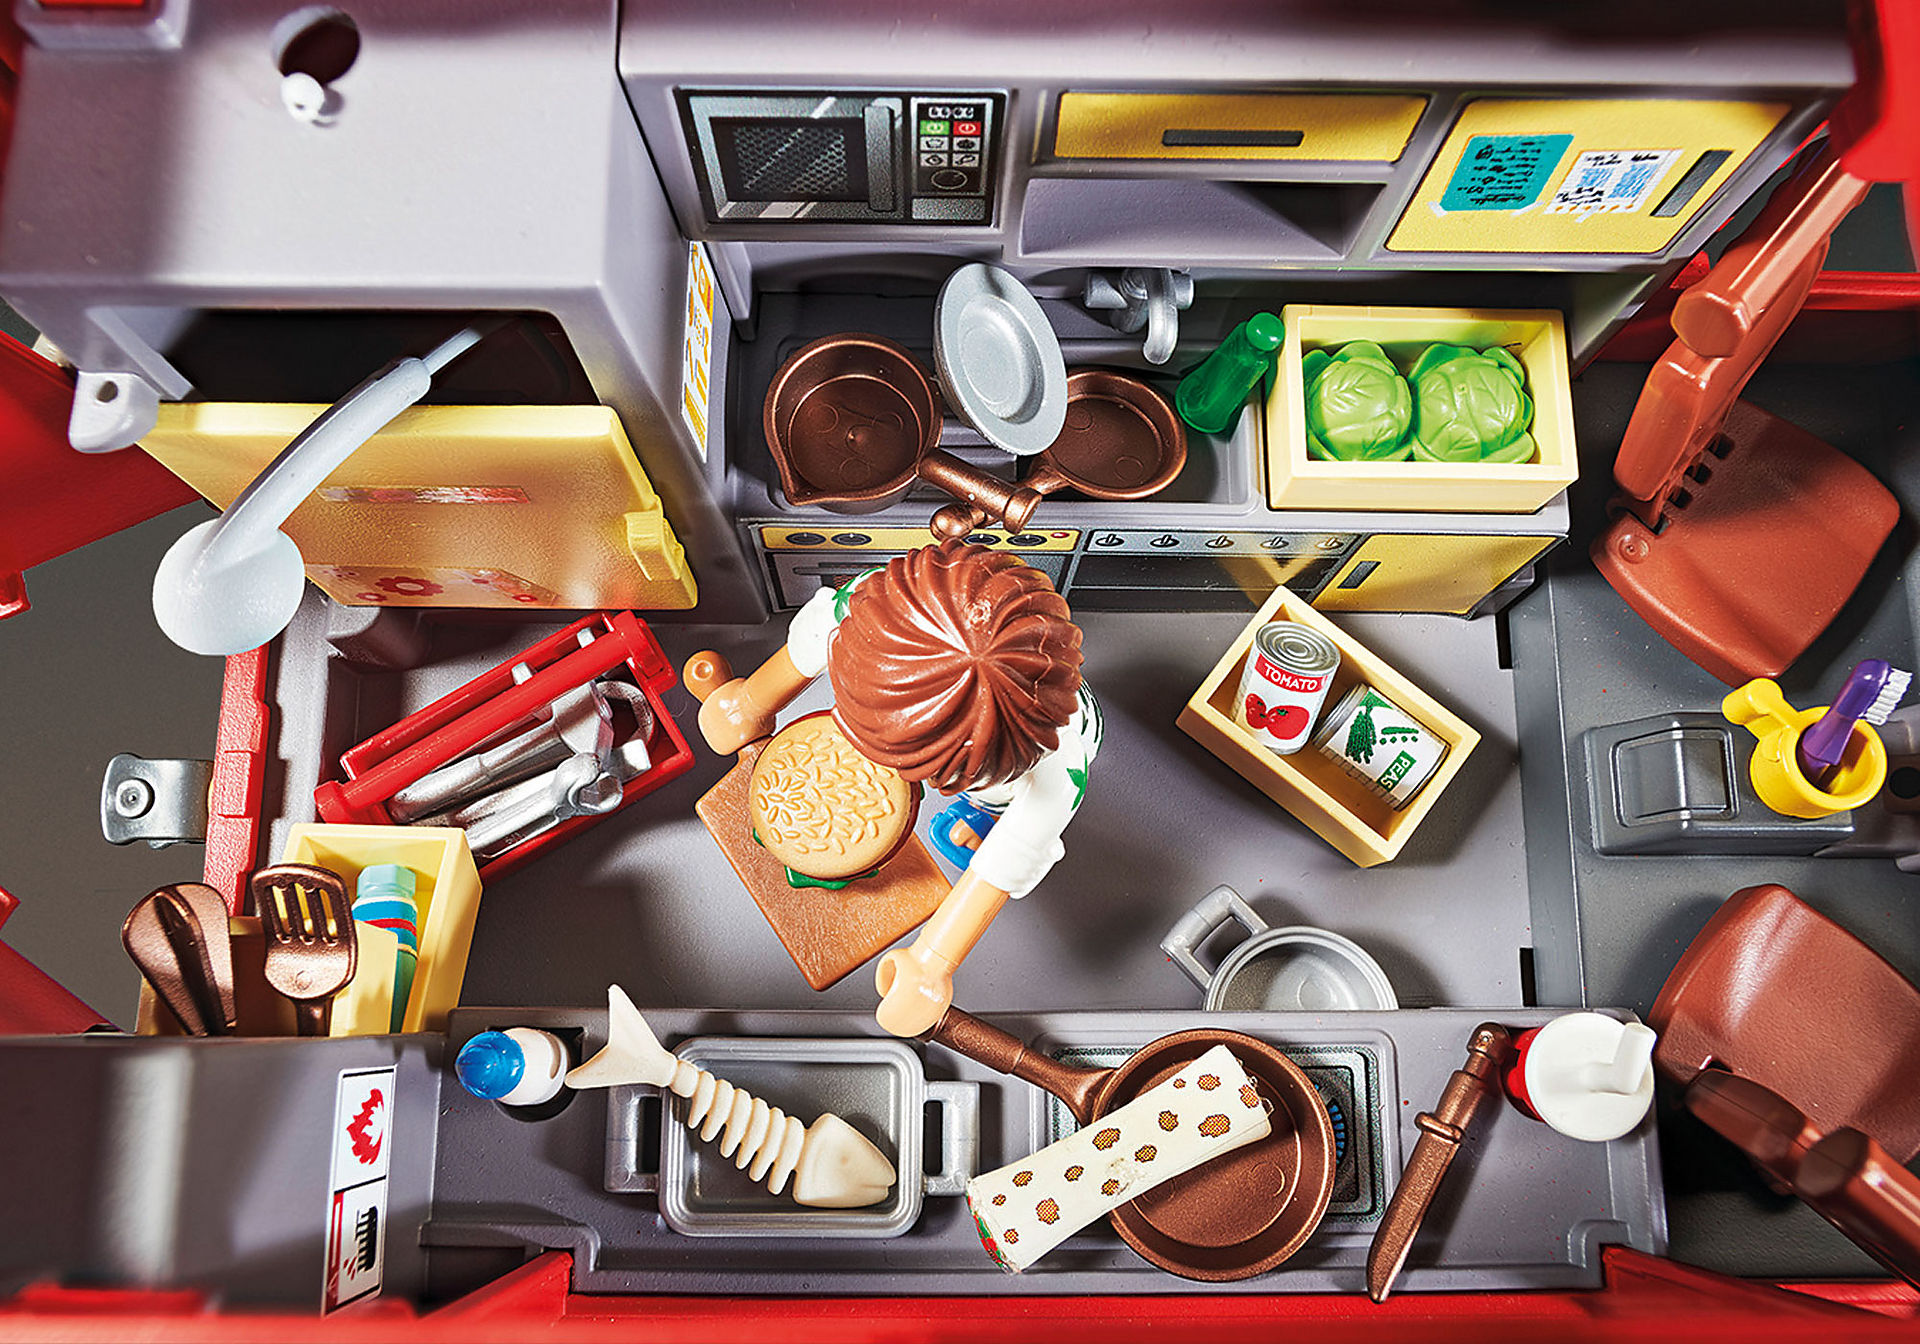 70075 PLAYMOBIL. THE MOVIE Carrinha da Comida do Del zoom image4